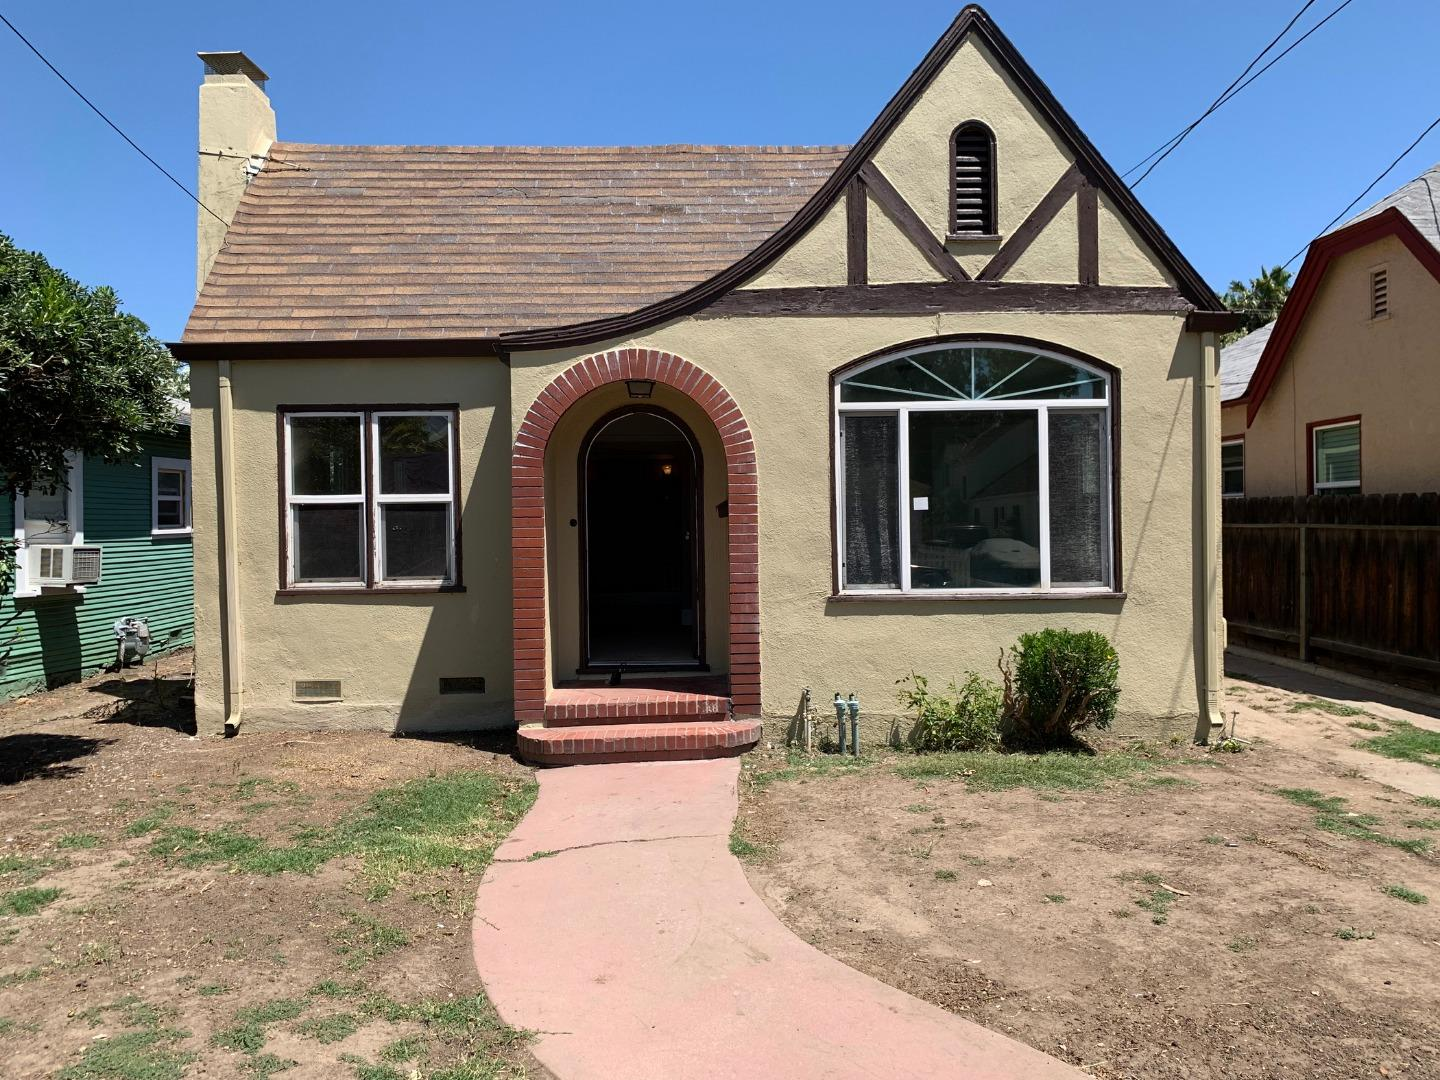 Image for 415 W 10Th Street, <br>Tracy 95376